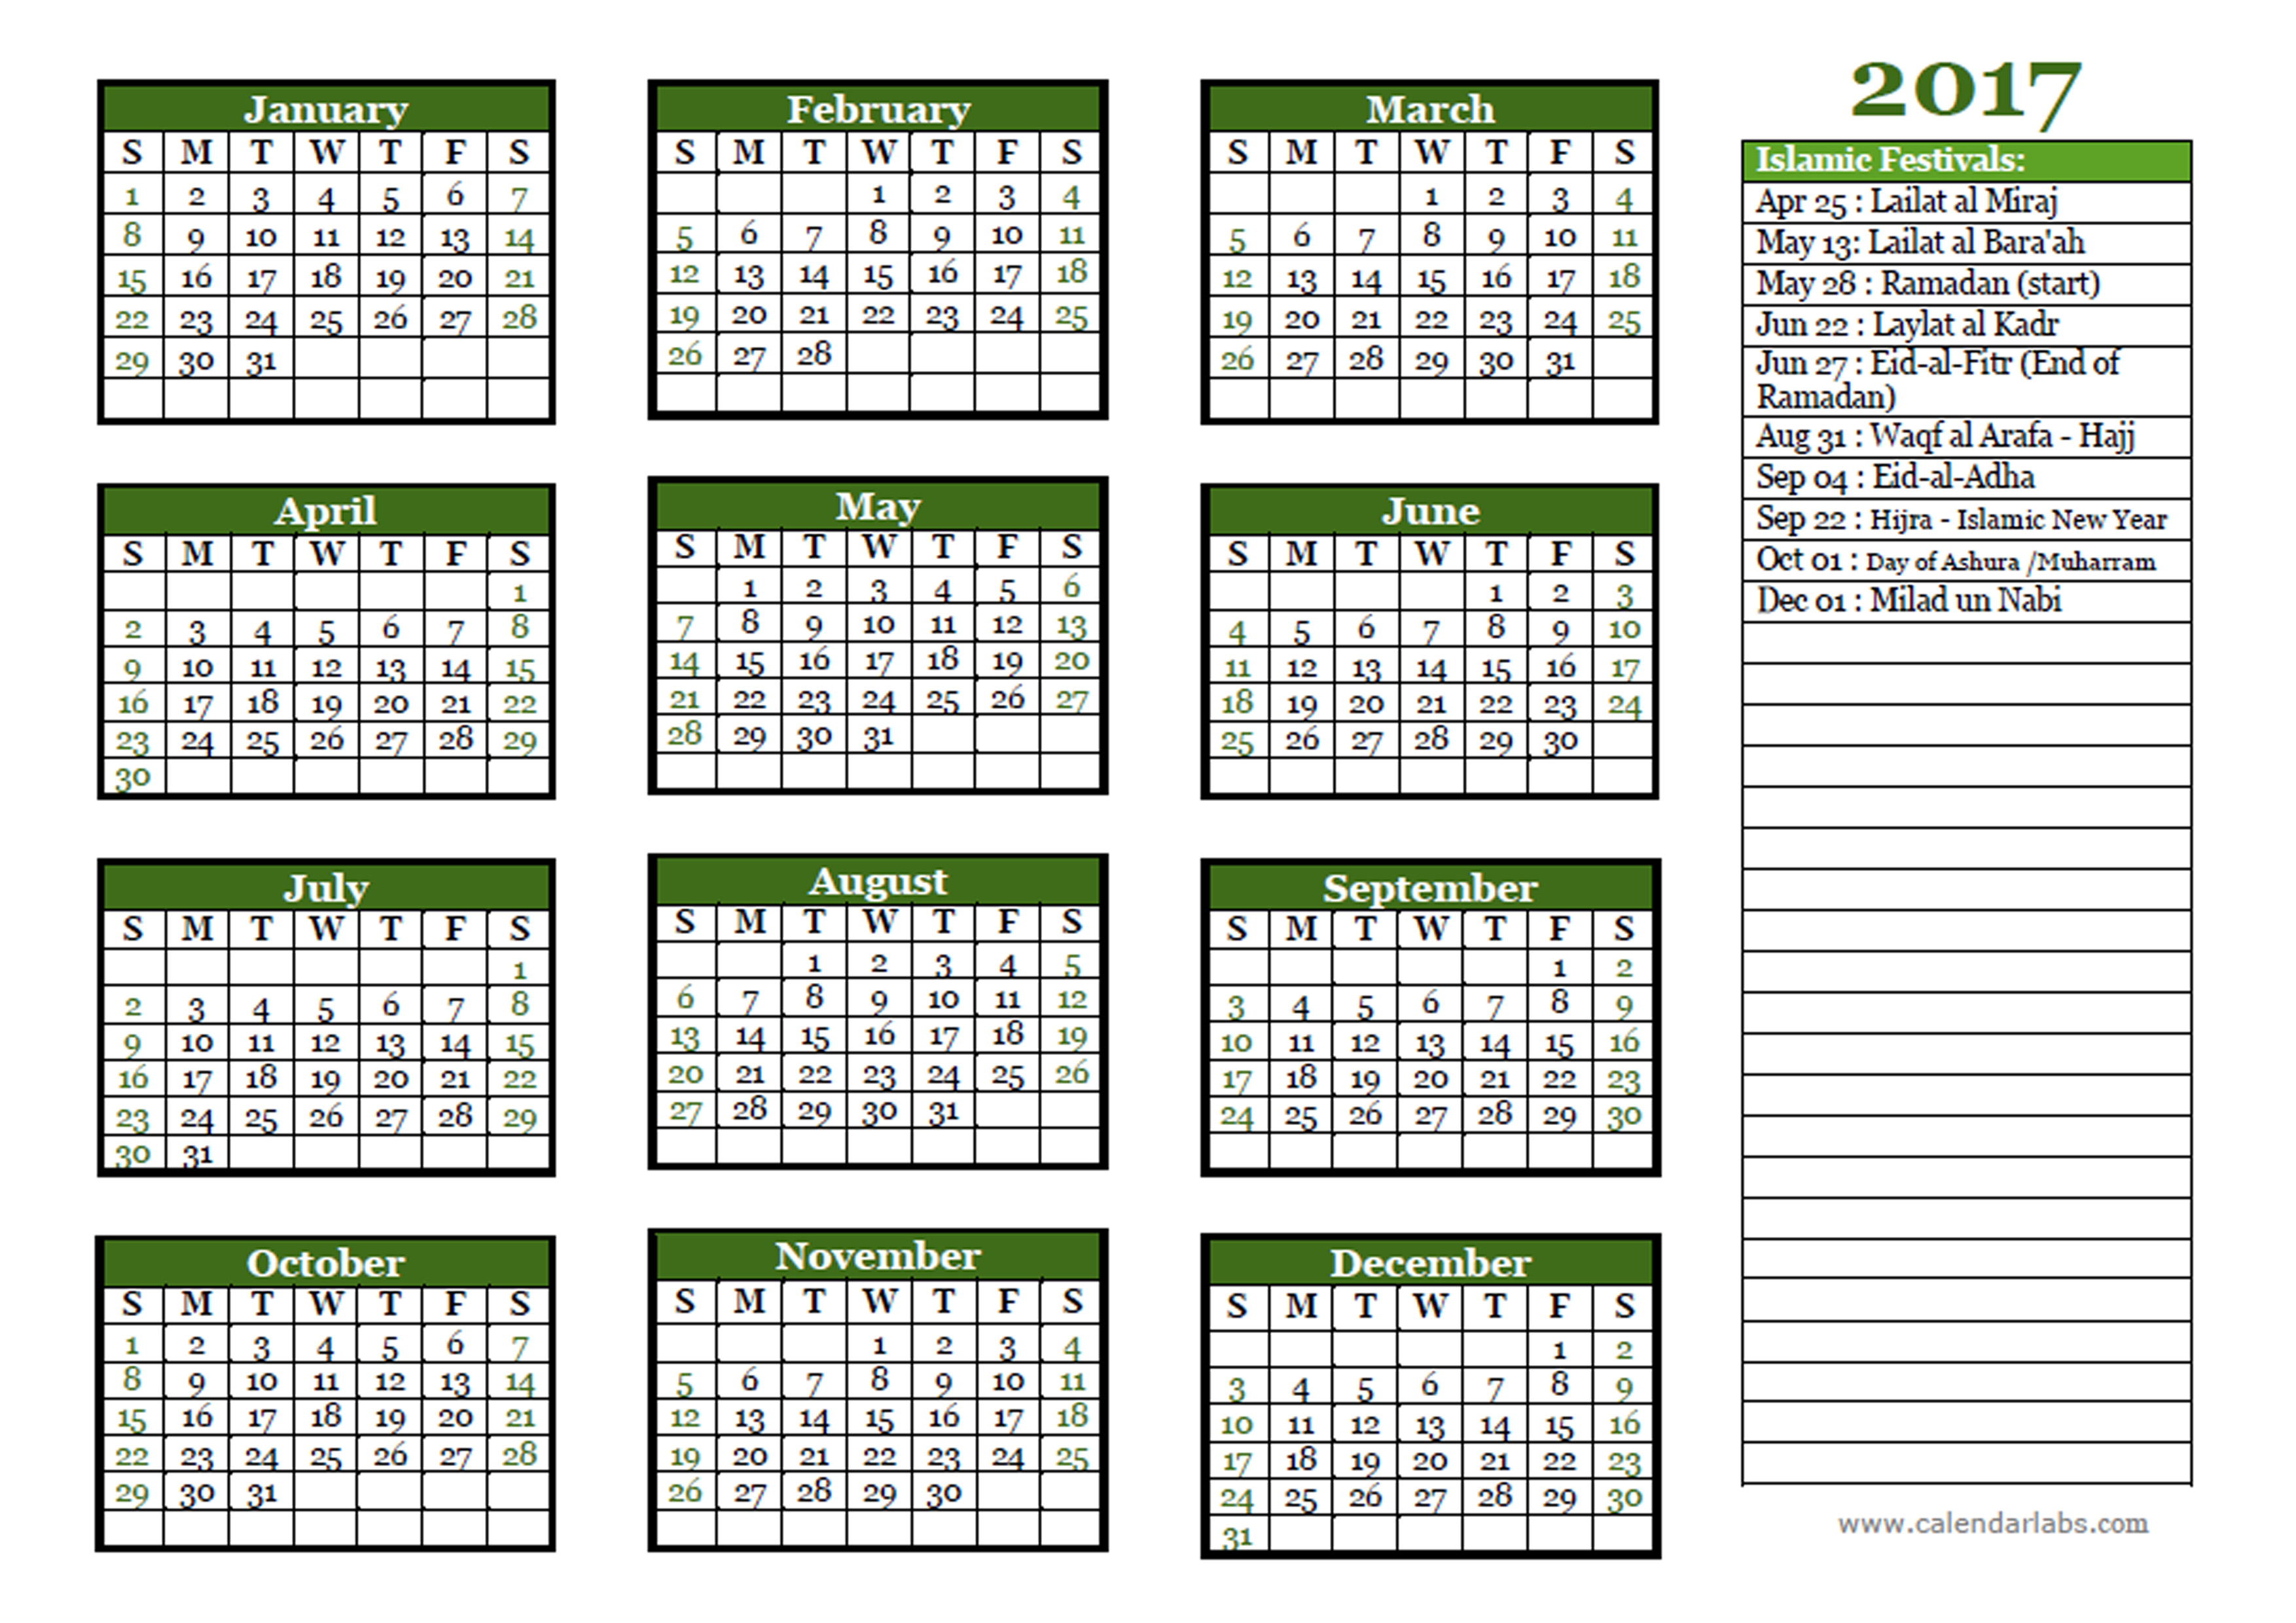 Julian And Gregorian Calendars For 2017 Year 2017 Calendar Gregorian Calendar Time And Date 2017 Islamic Festivals Calendar Template Free Printable